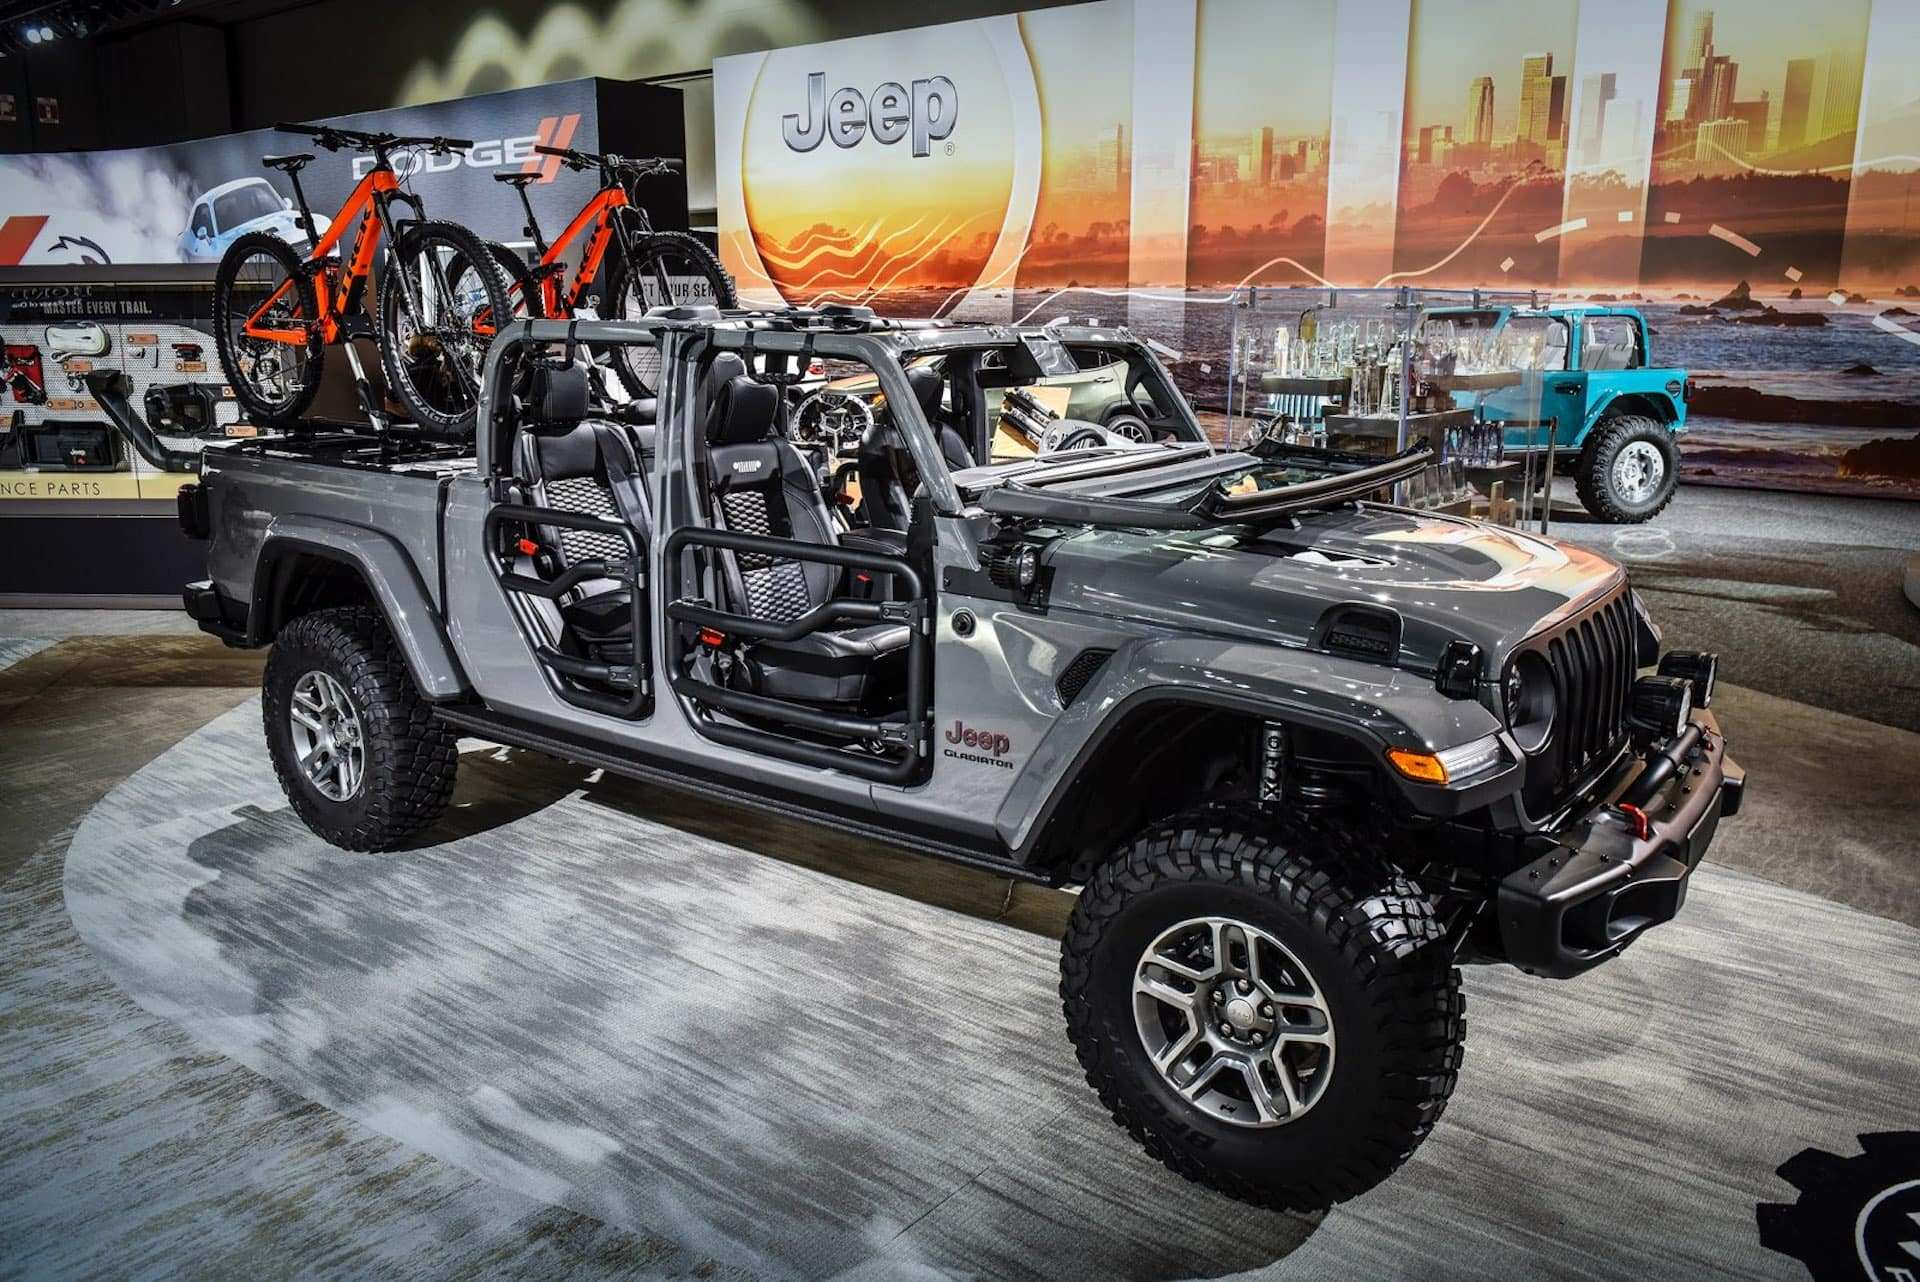 56 New When Is The 2020 Jeep Gladiator Coming Out Speed Test by When Is The 2020 Jeep Gladiator Coming Out